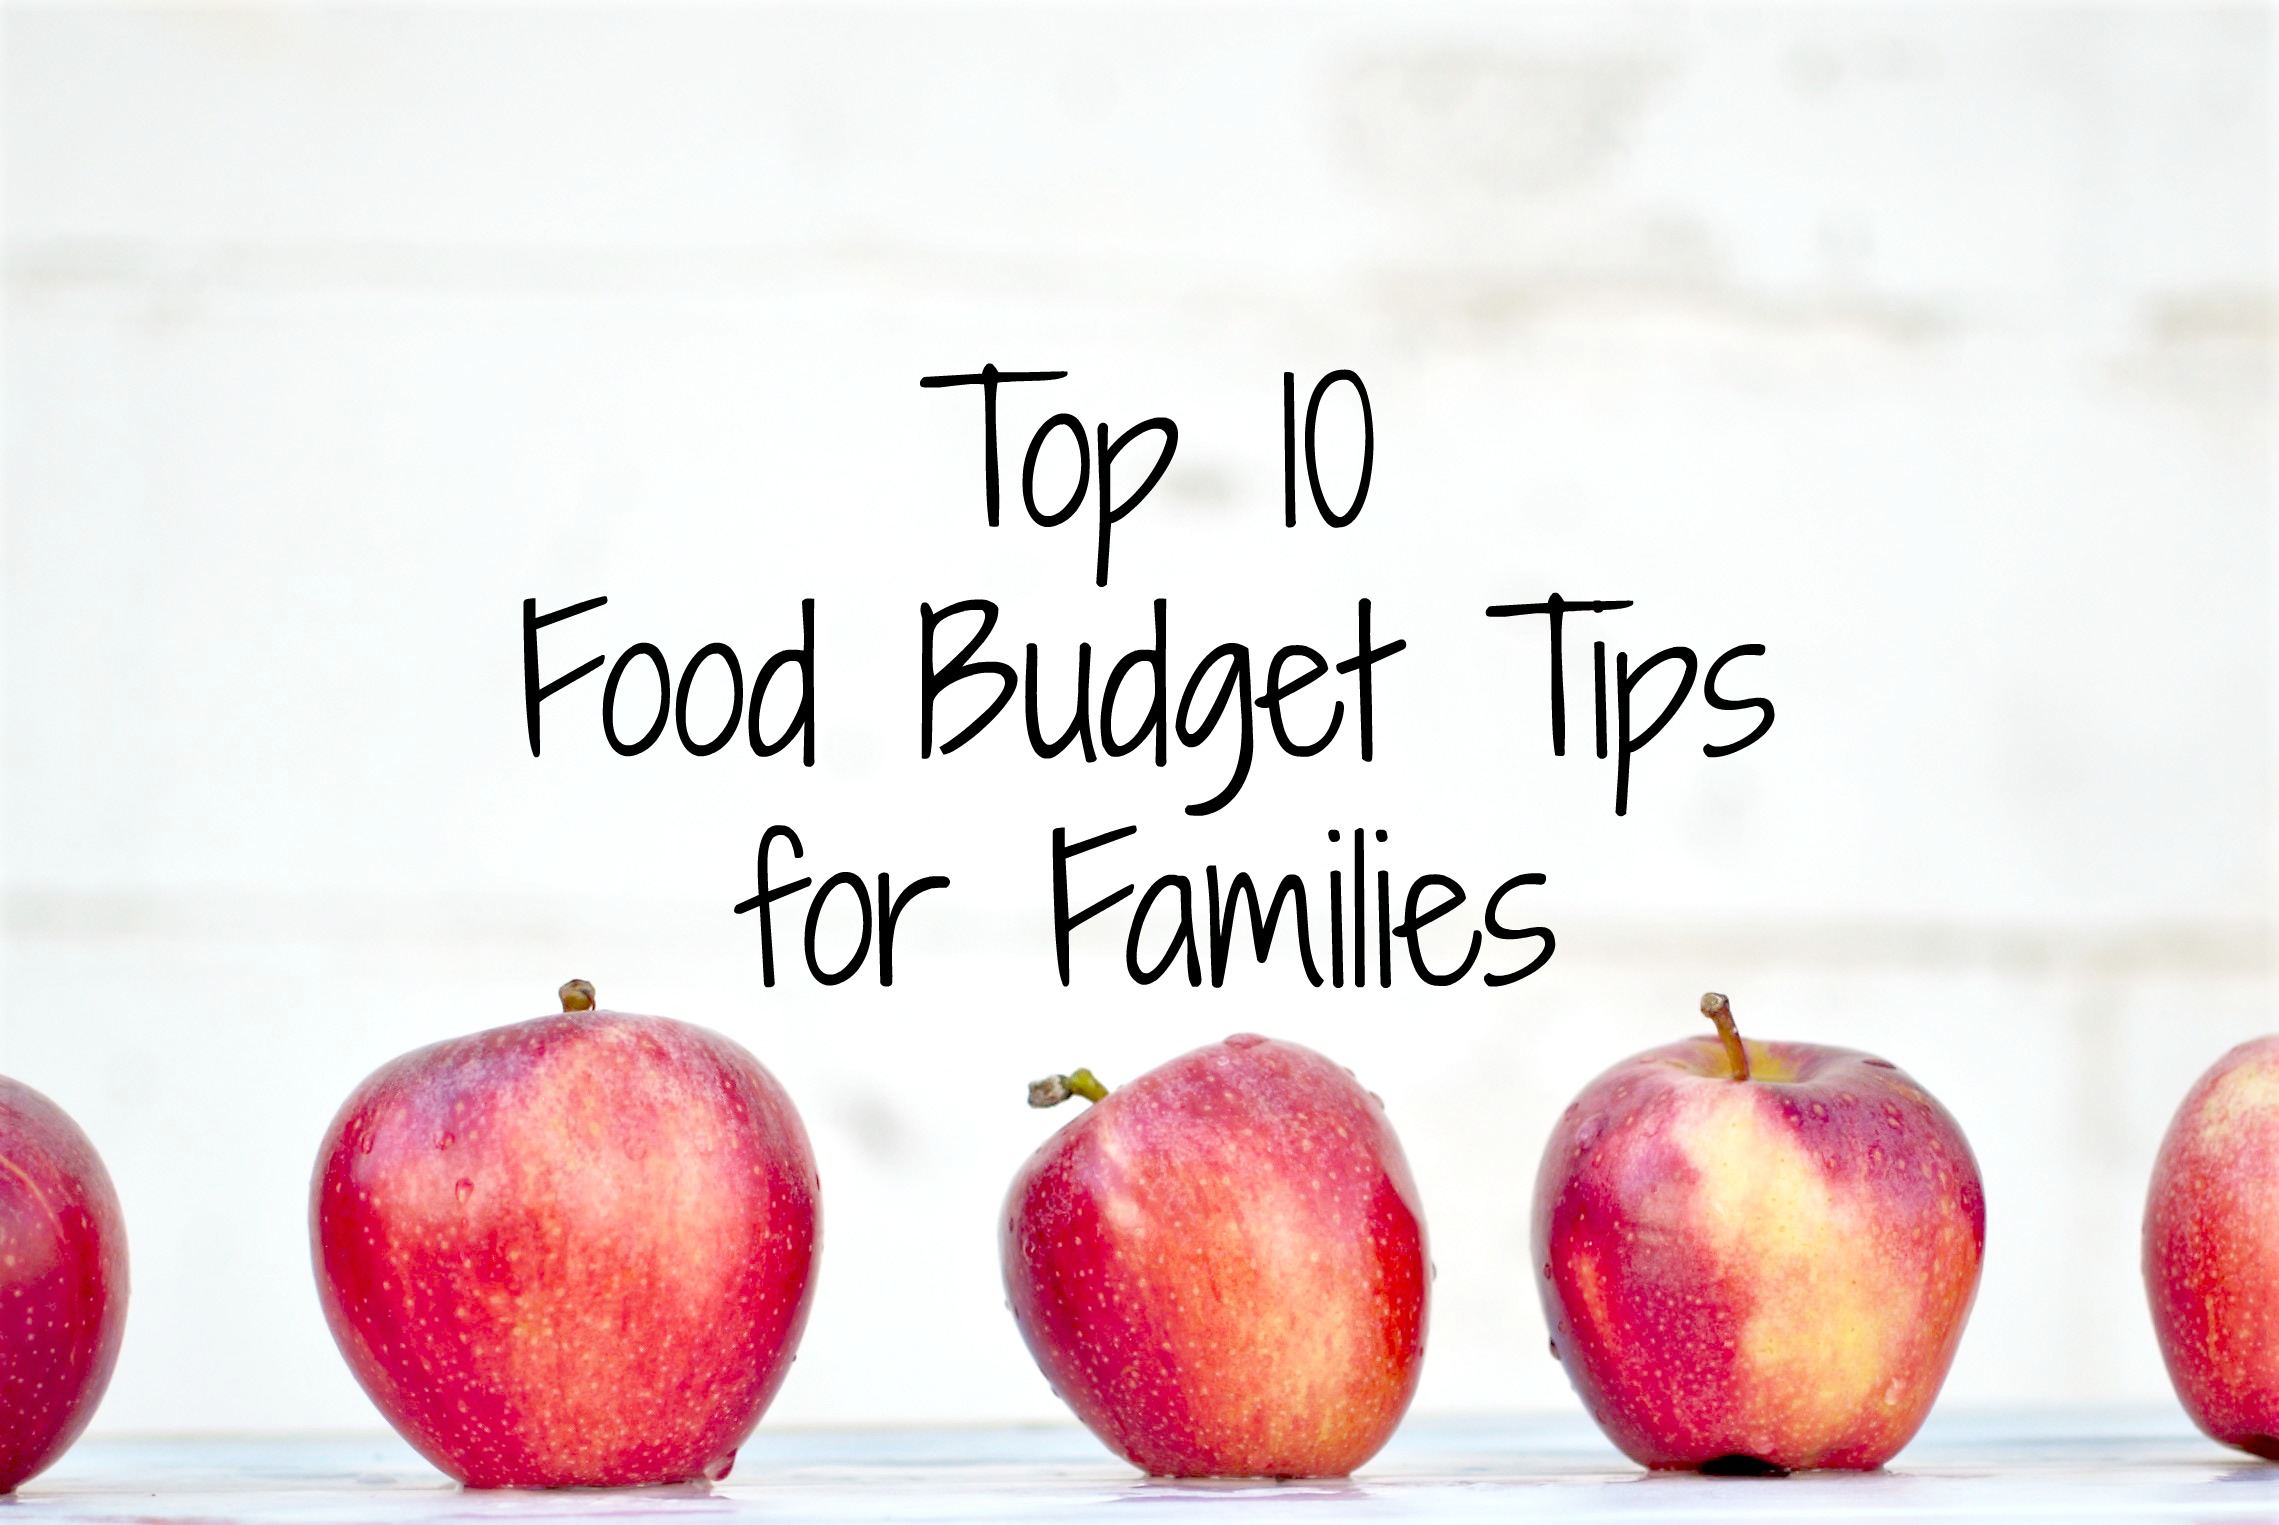 Top 10 Food Budget Tips for Families